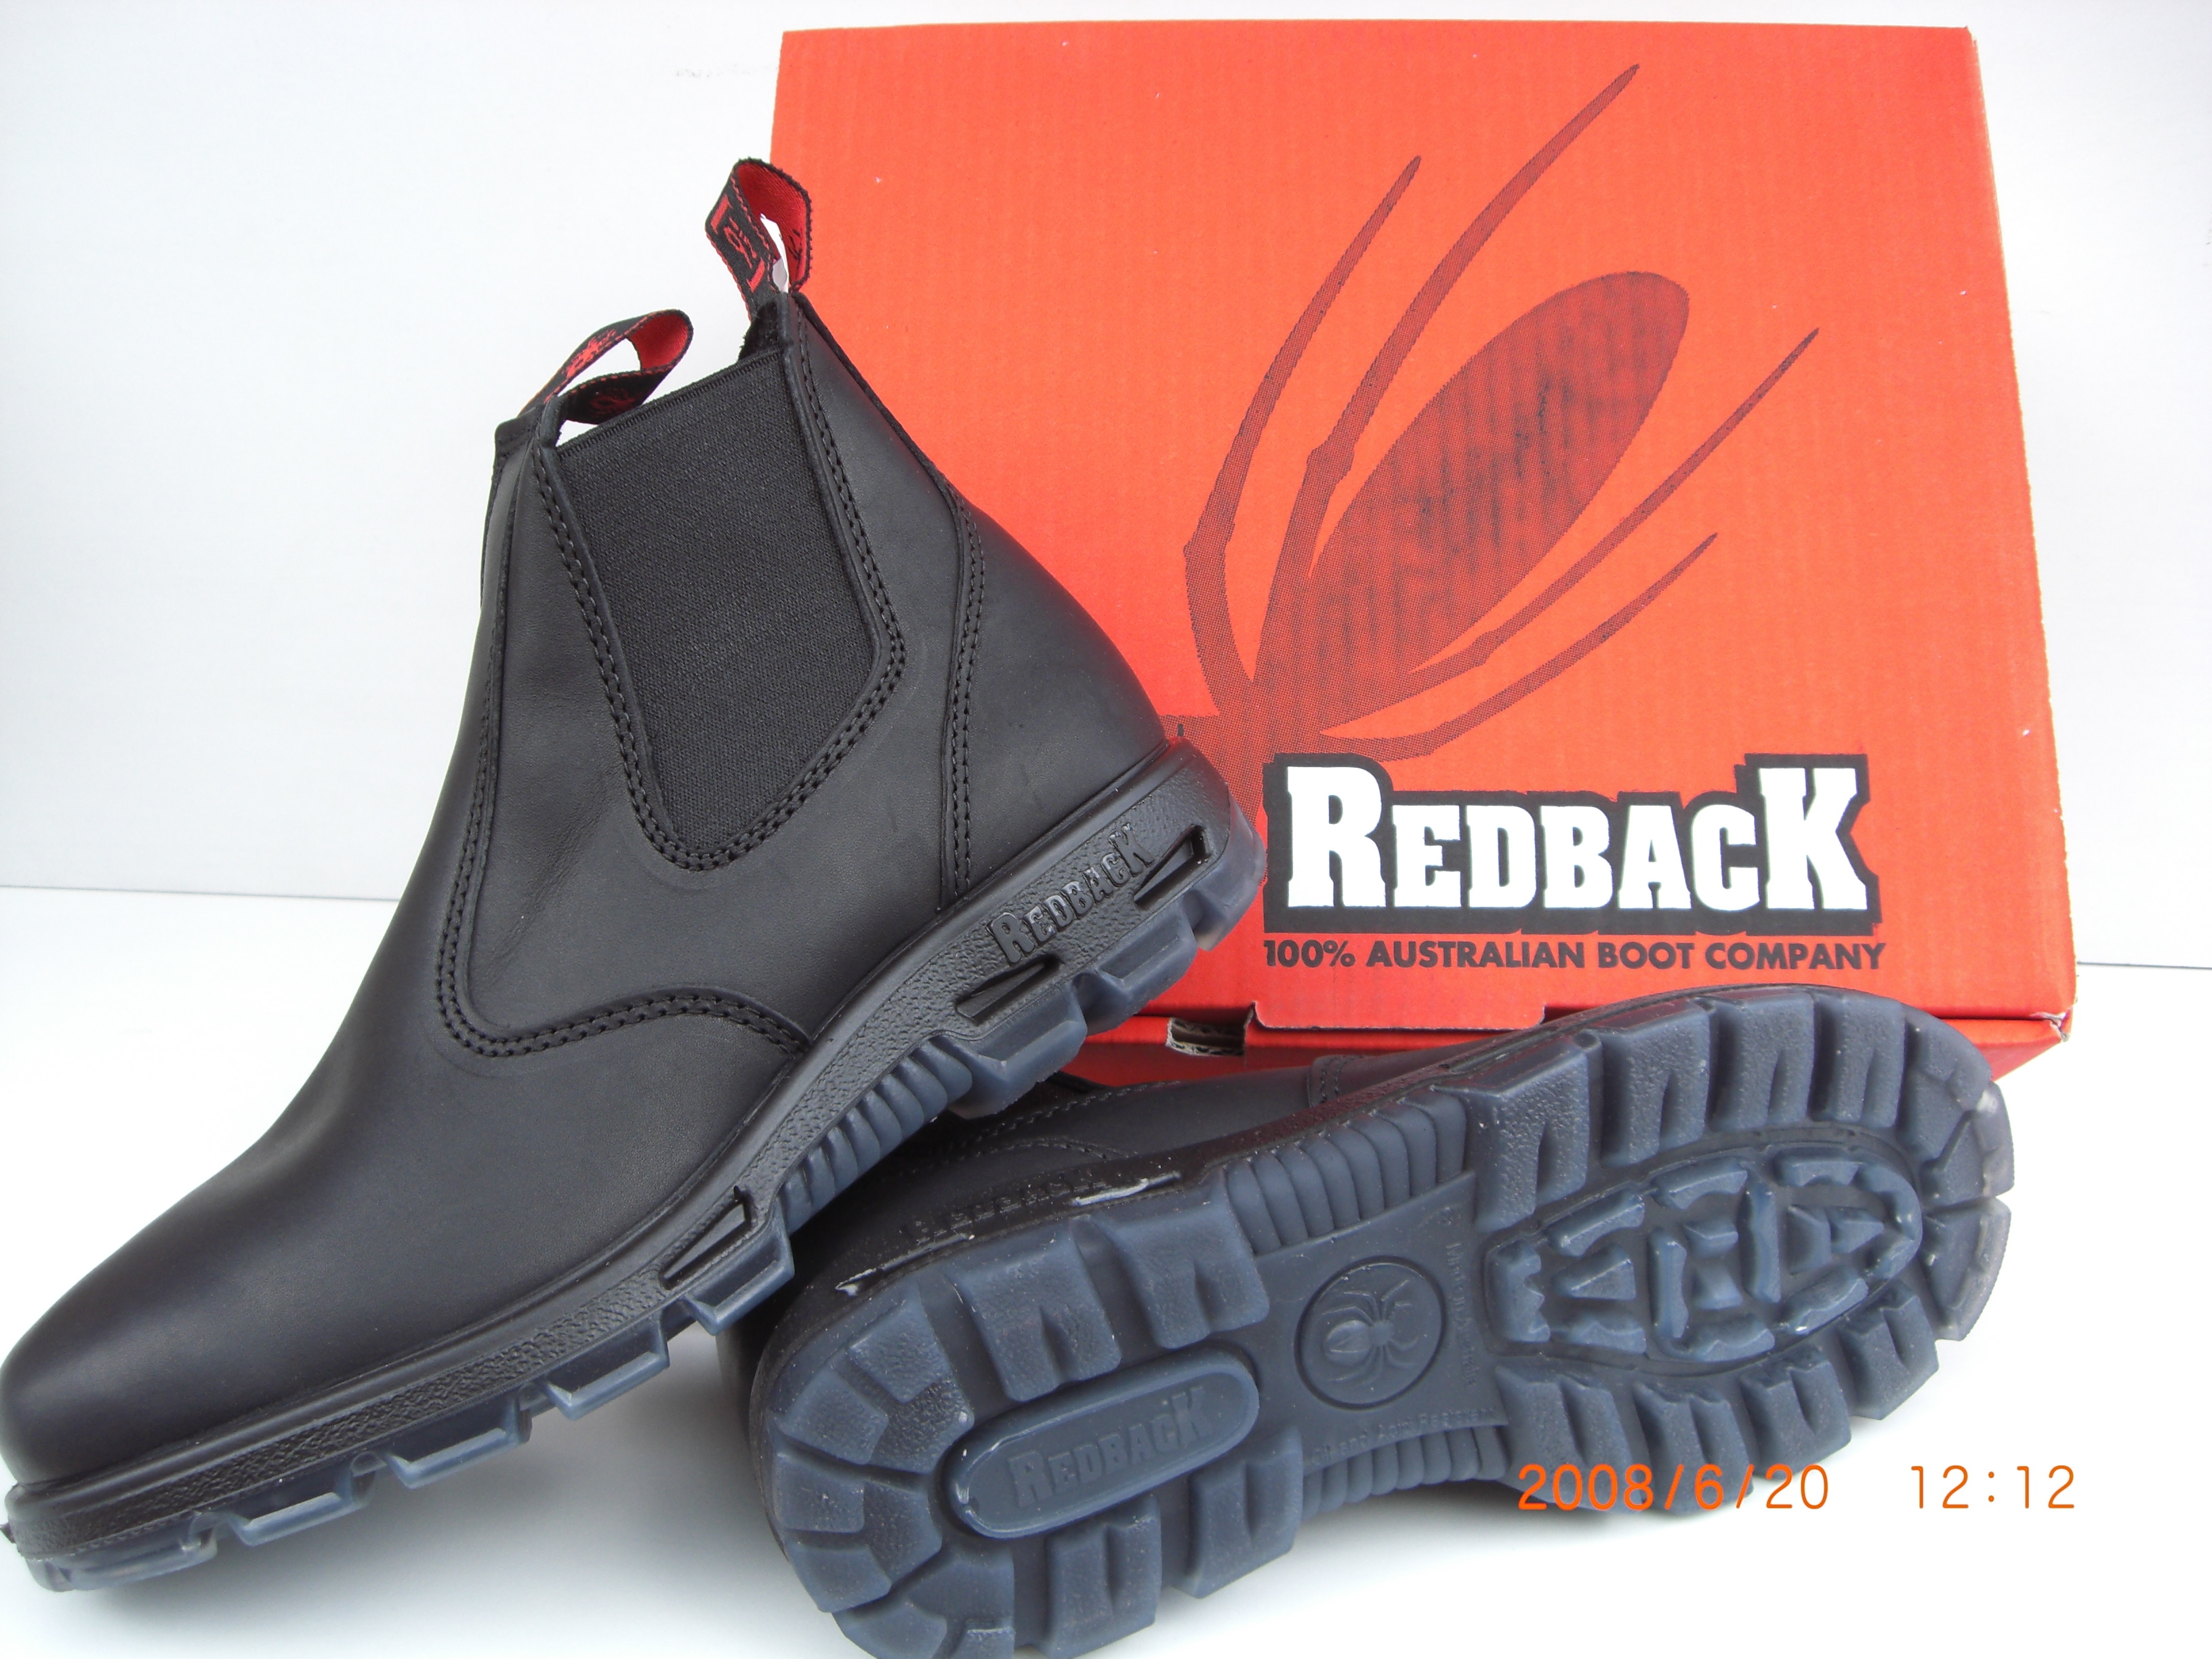 Australian Redback Boots USBBK with